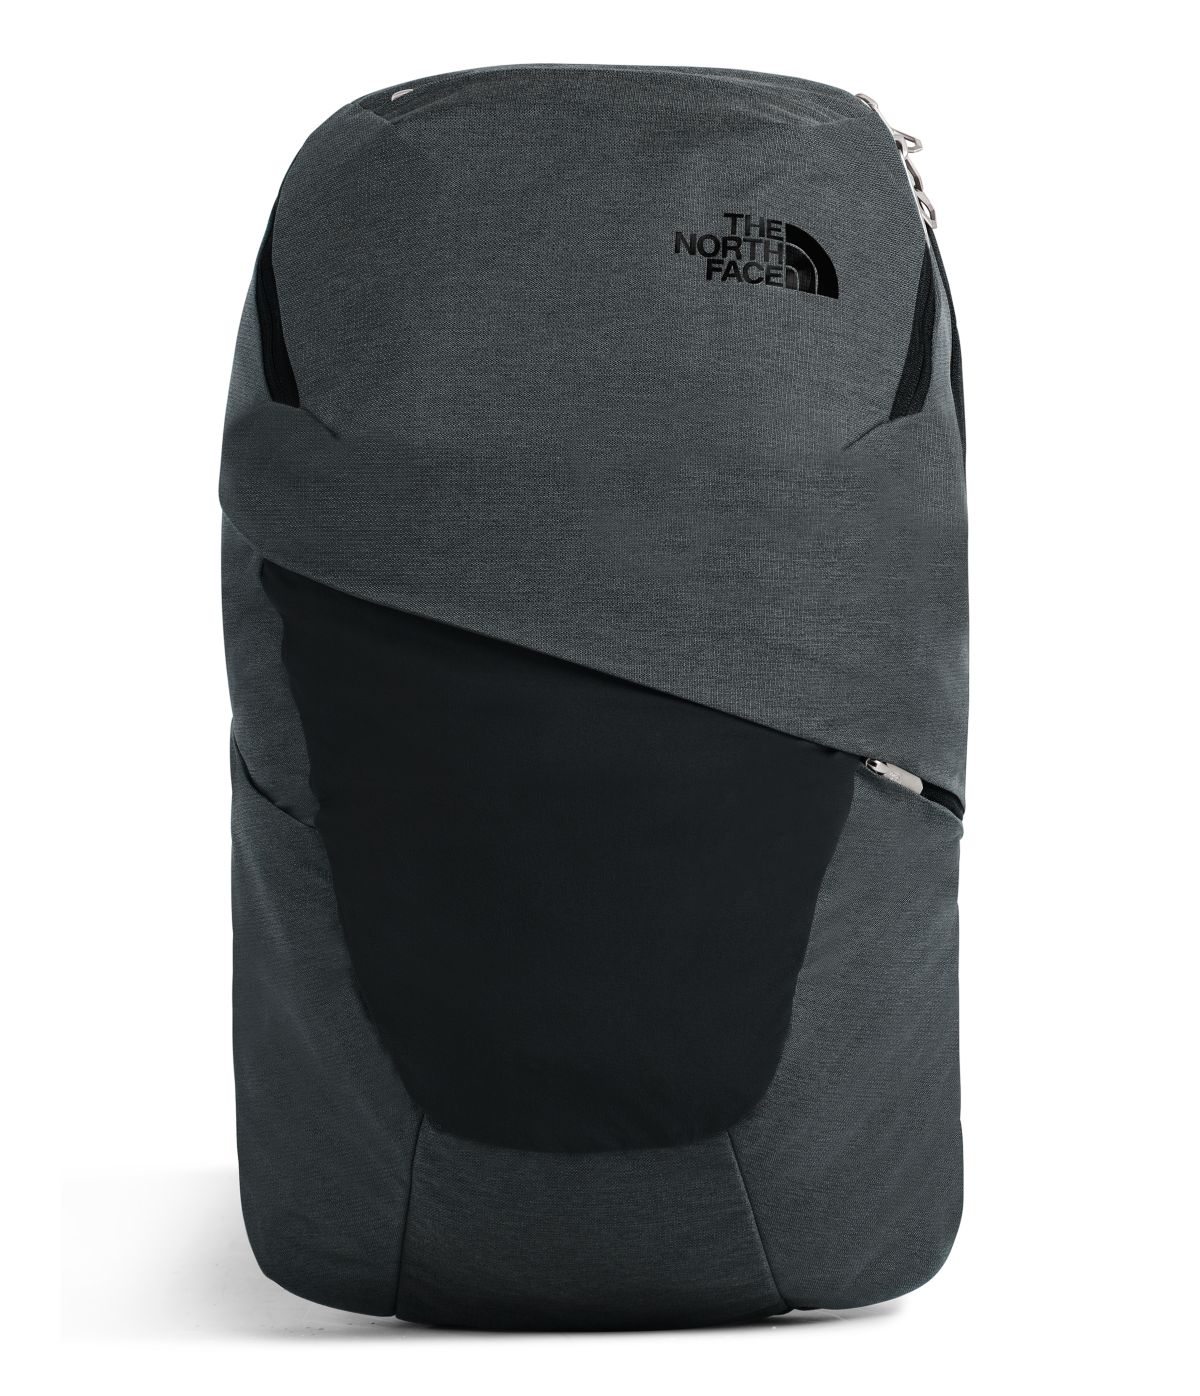 Women's The North Face Aurora Backpack in Asphalt Grey Light Heather/TNF Black from front view